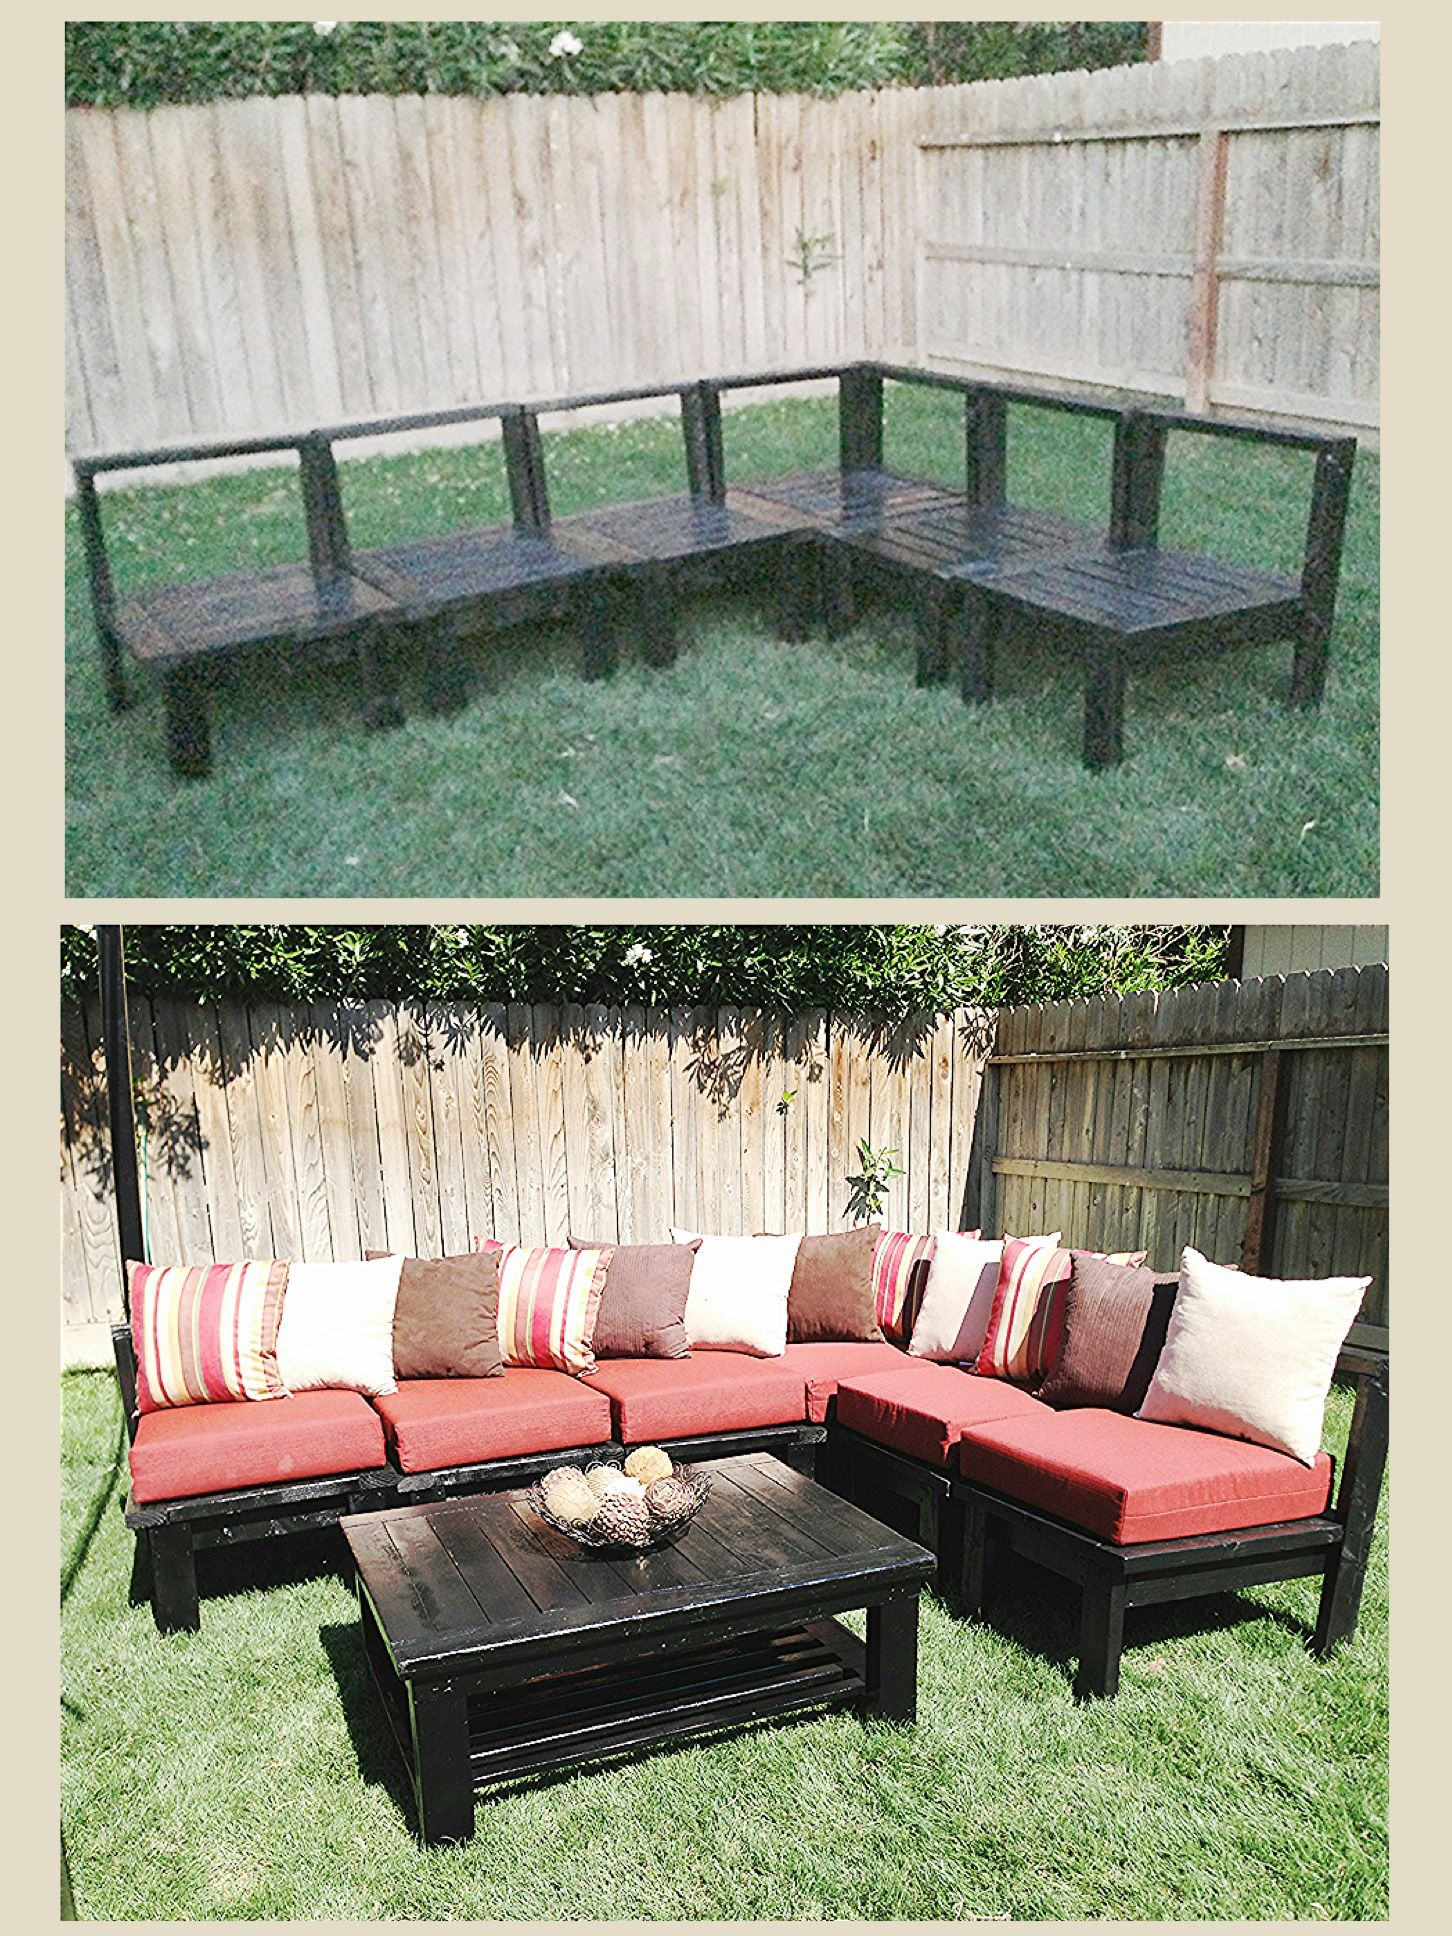 DIY Patio Furniture My husband made this sectional sofa set out